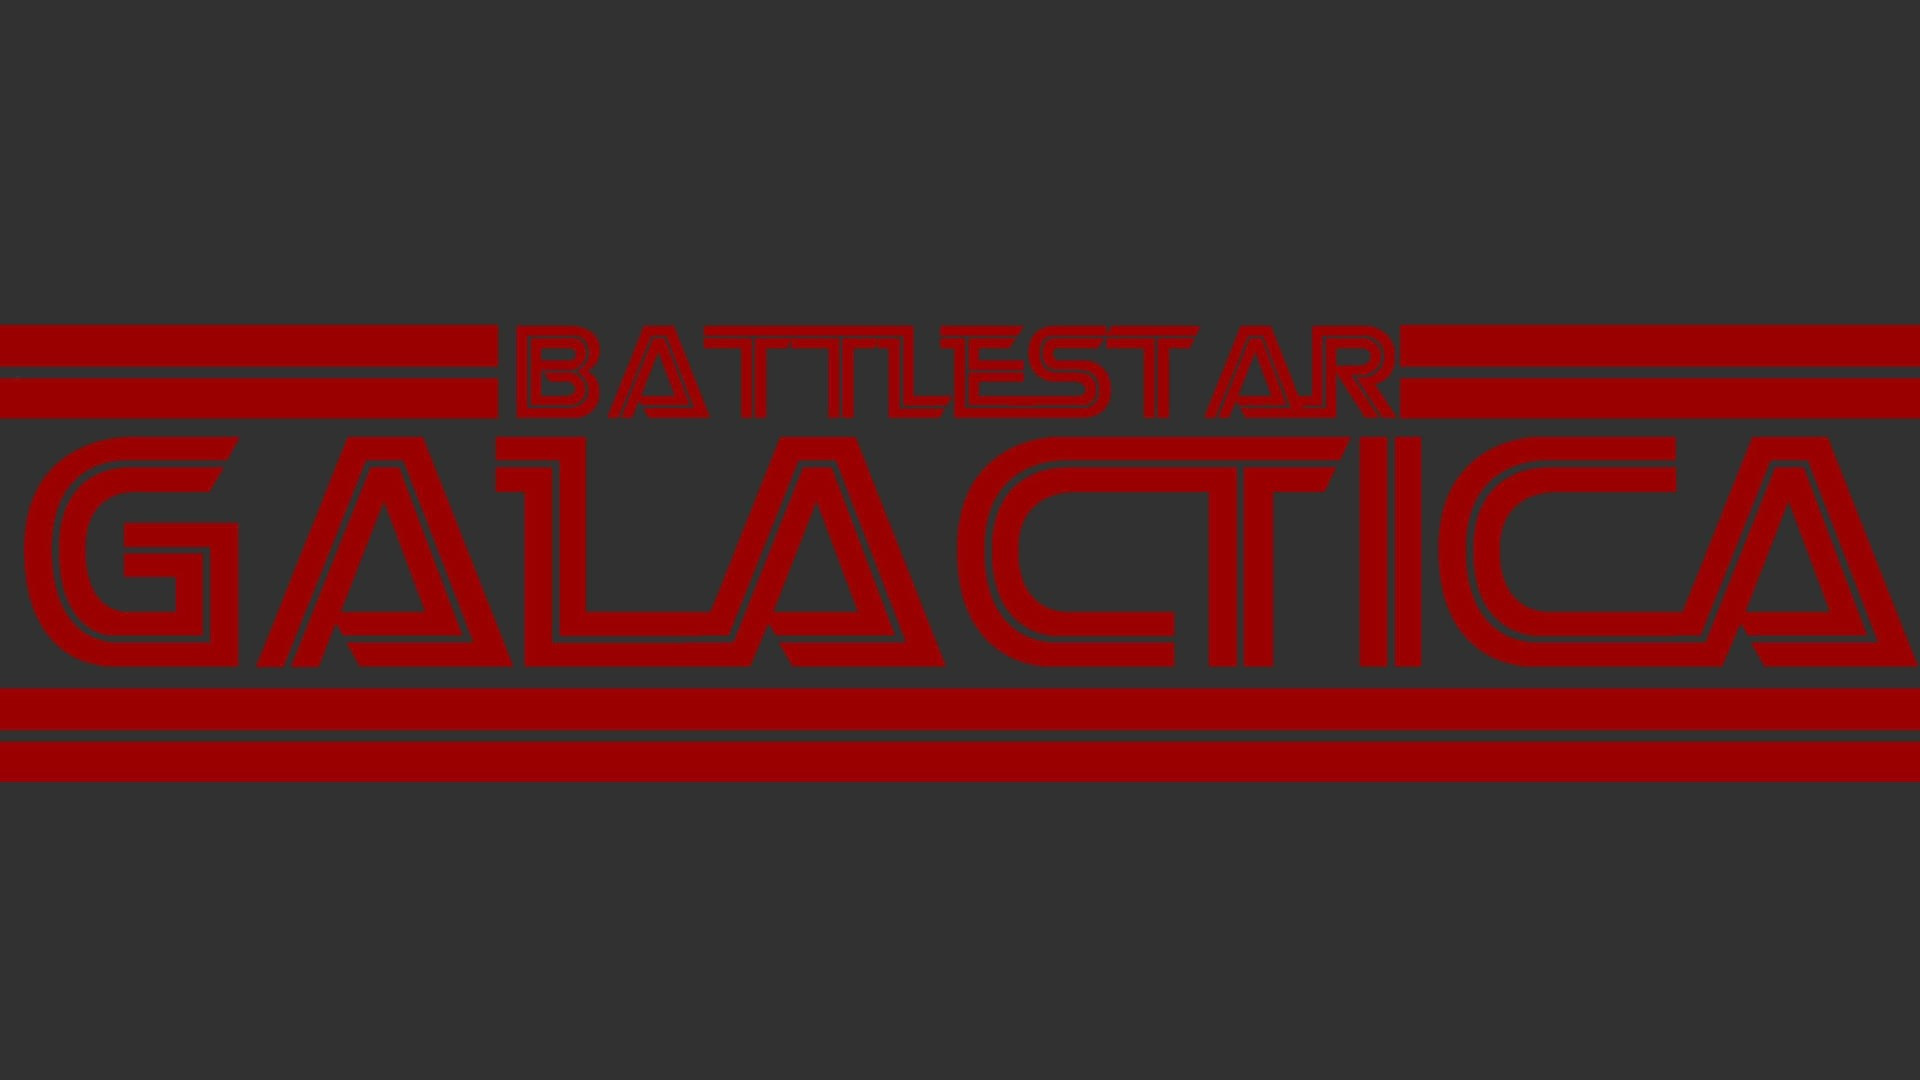 1920x1080-px-hd-battlestar-galactica-by-Harley-Archibald-for-pocketfullofgrace-co-wallpaper-wpc580941